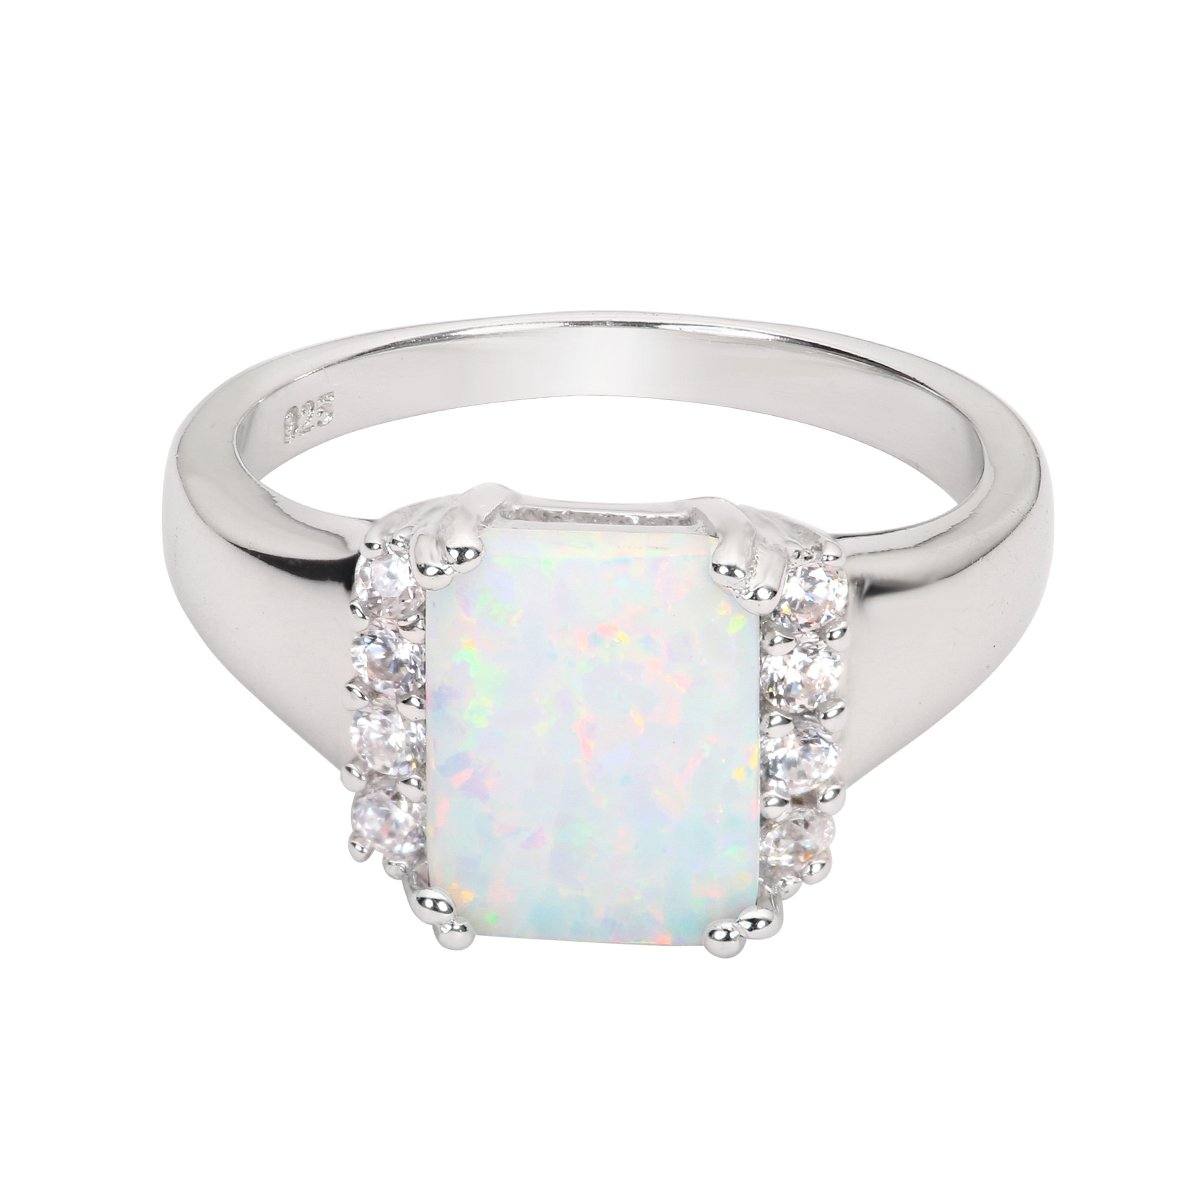 Princess Kylie Rectangle White Synthetic Opal Cubic Zirconia Ring Sterling Silver Size 8